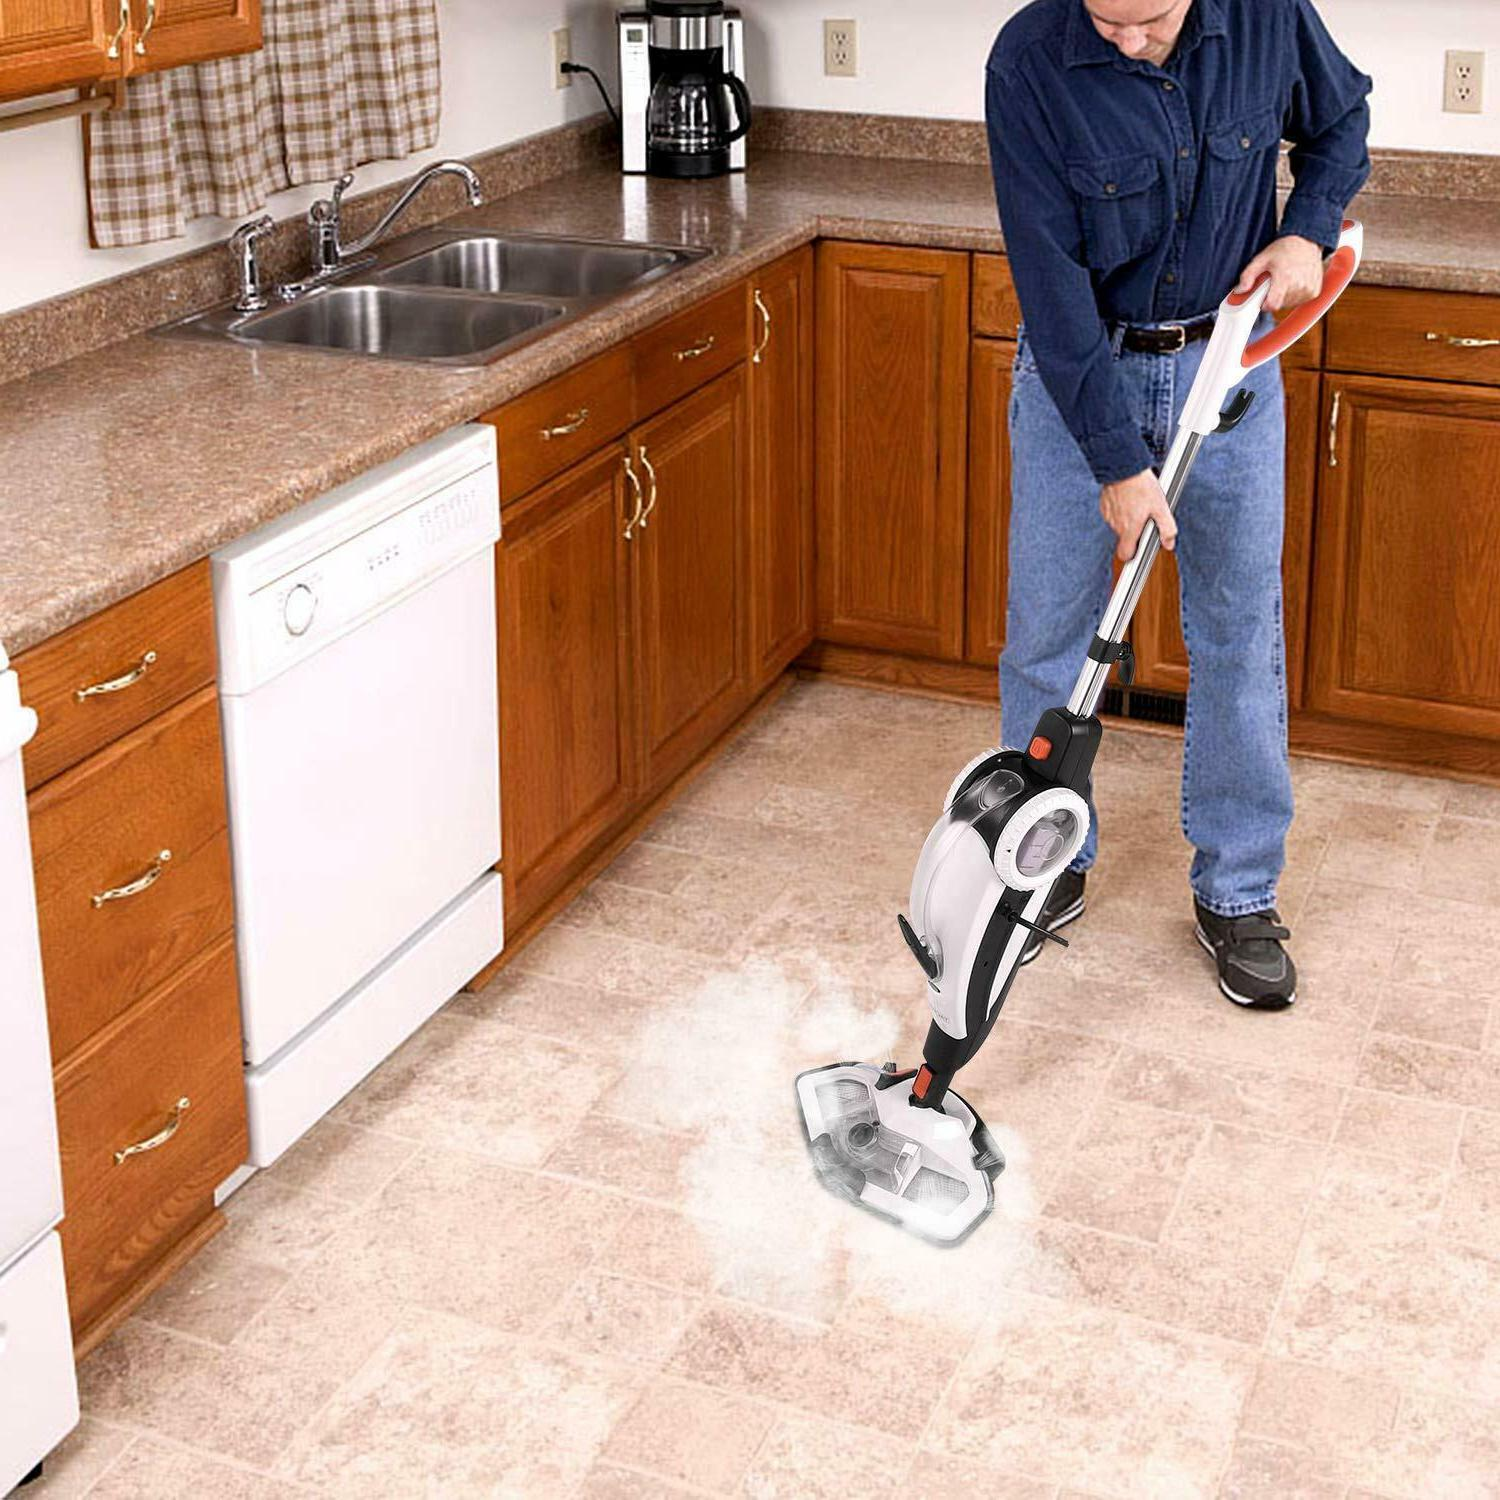 Steam Mop, Cleaner and